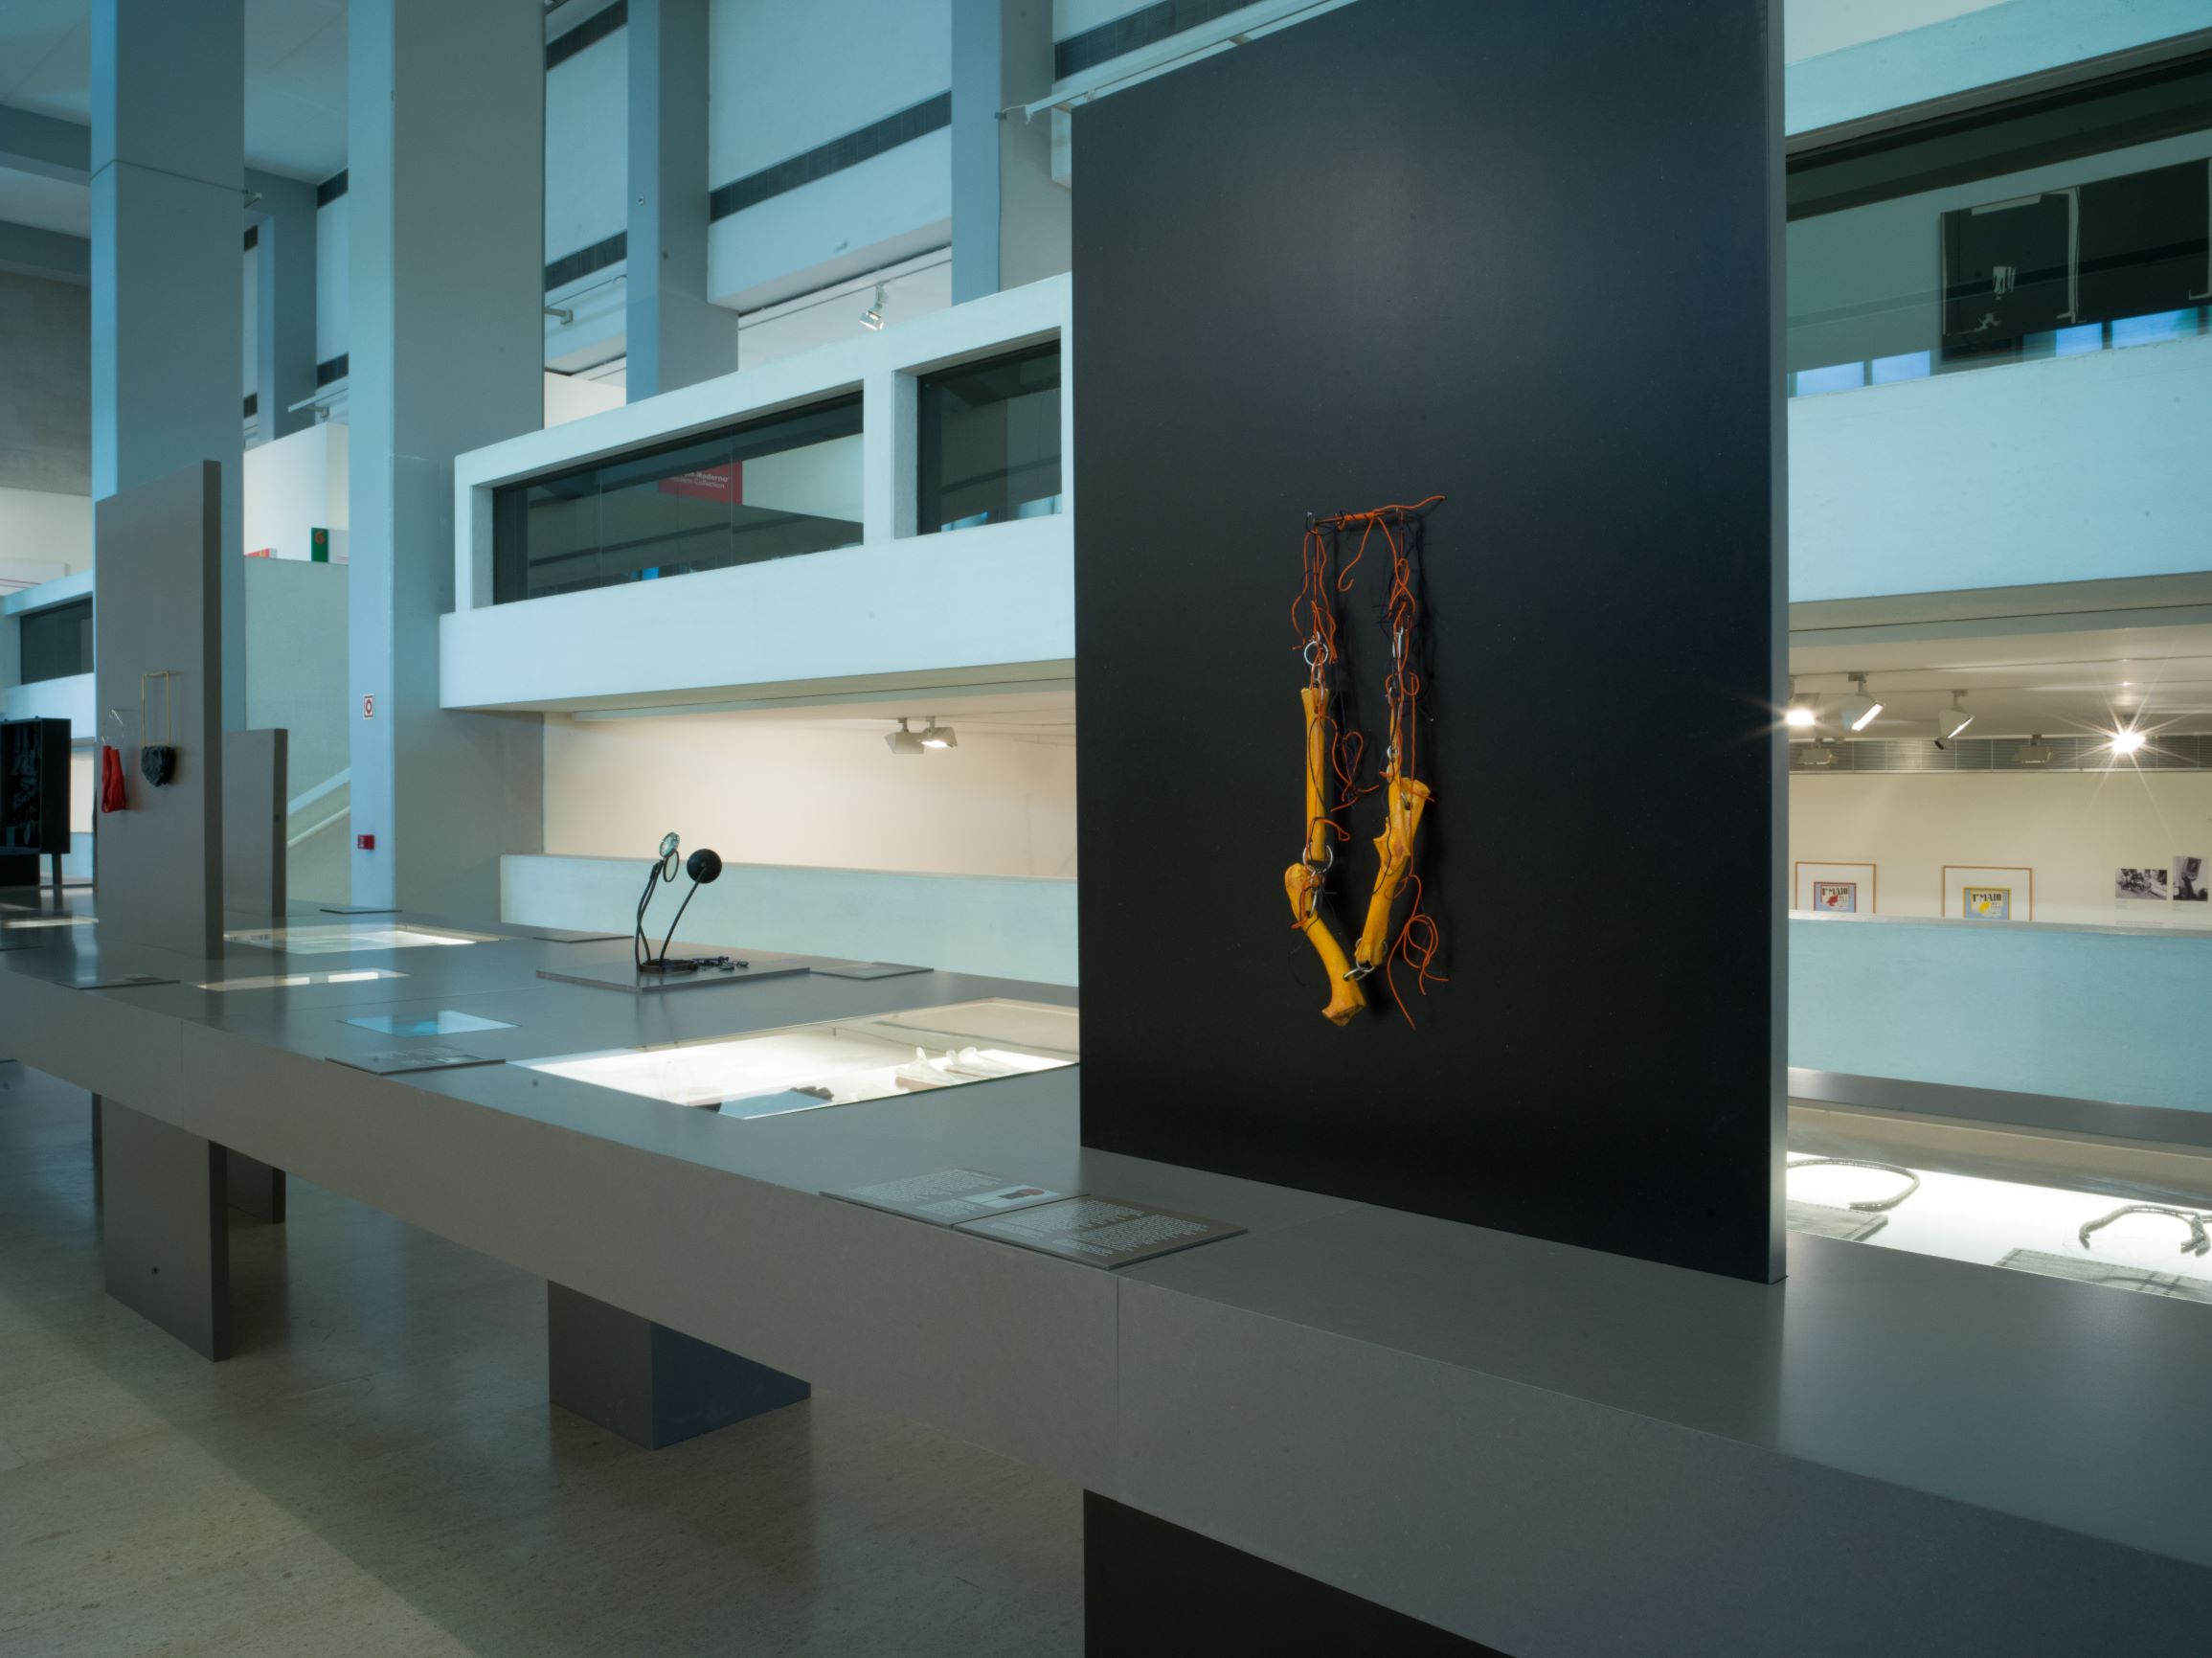 Contemporary Jewellery in Portugal/Joalharia Contemporânea em Portugal, 2019. Foto Catarina Gomes Ferreira, tentoonstelling